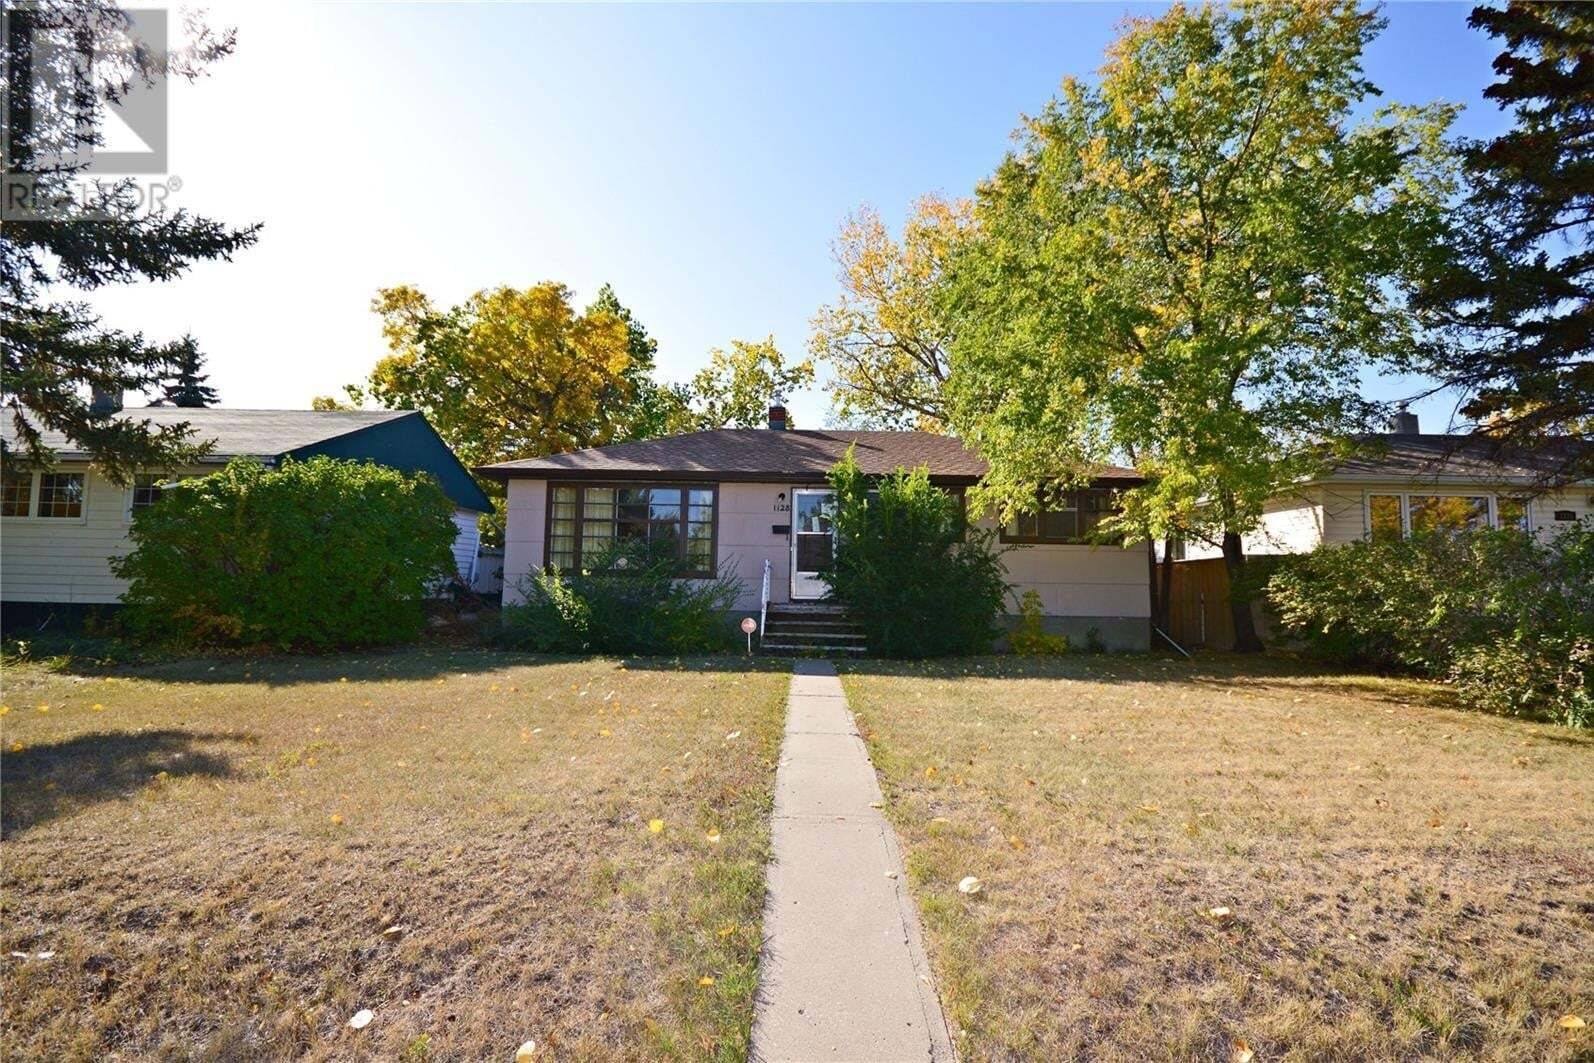 House for sale at 1128 8th Ave NW Moose Jaw Saskatchewan - MLS: SK827554